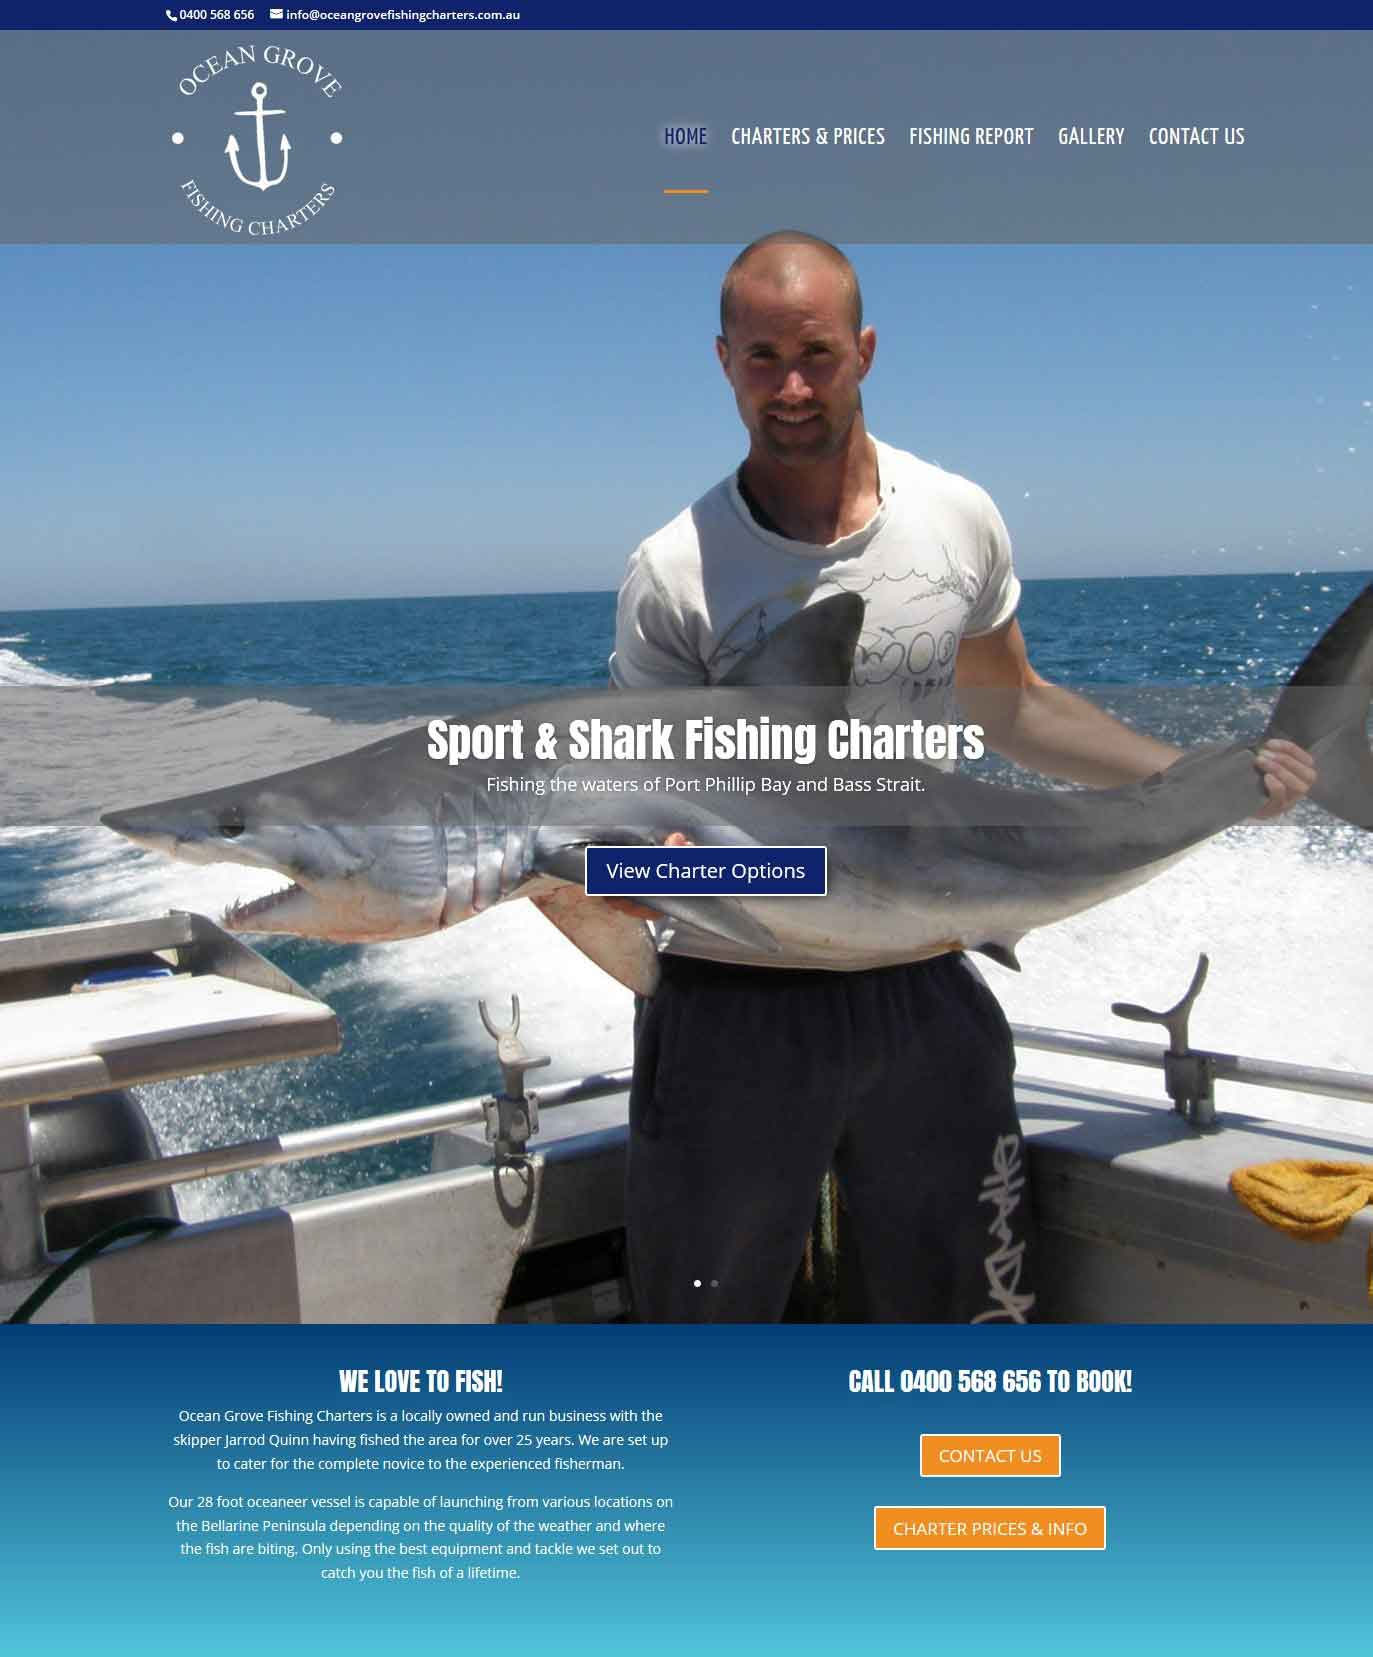 web design ocean grove fishing charters